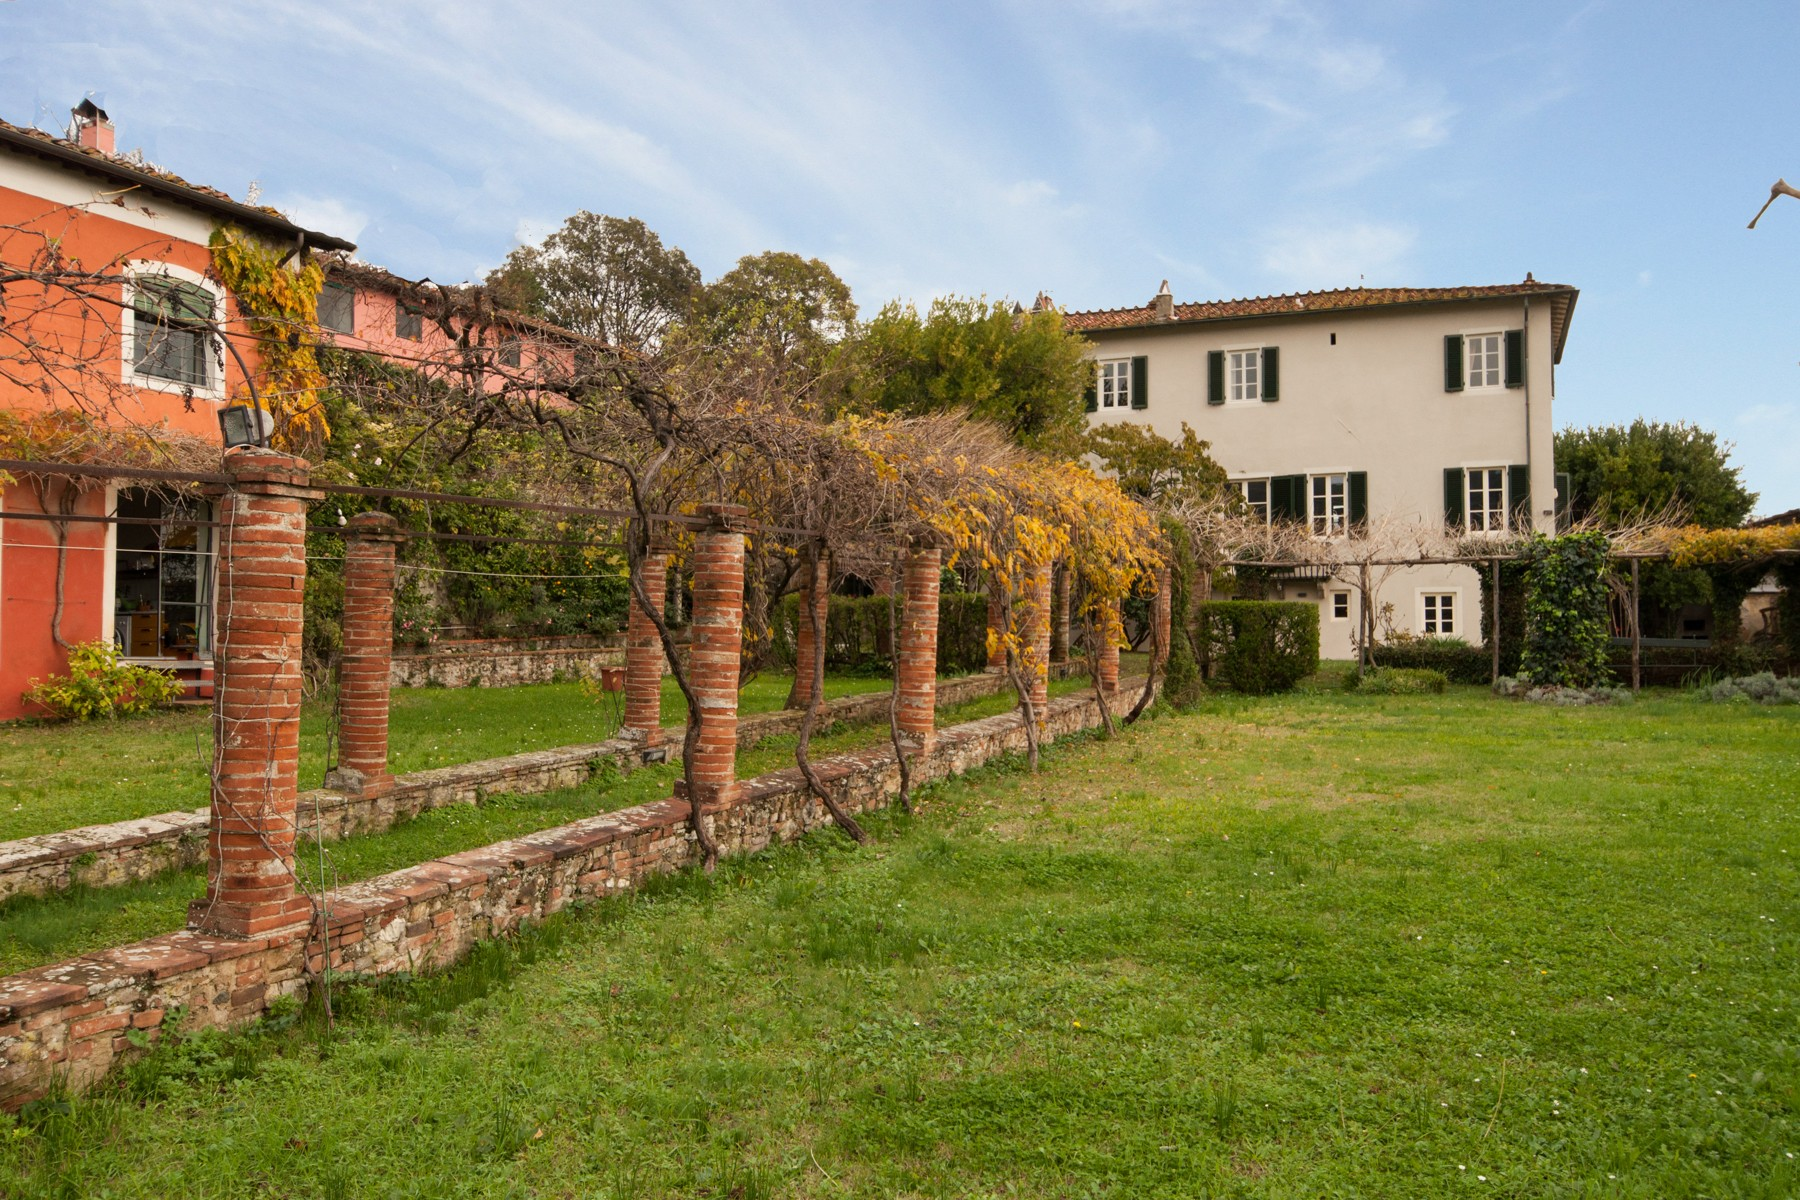 Additional photo for property listing at Enchanting property in Lucca countryside San Lorenzo di Moriano Lucca, Lucca 55100 Italie